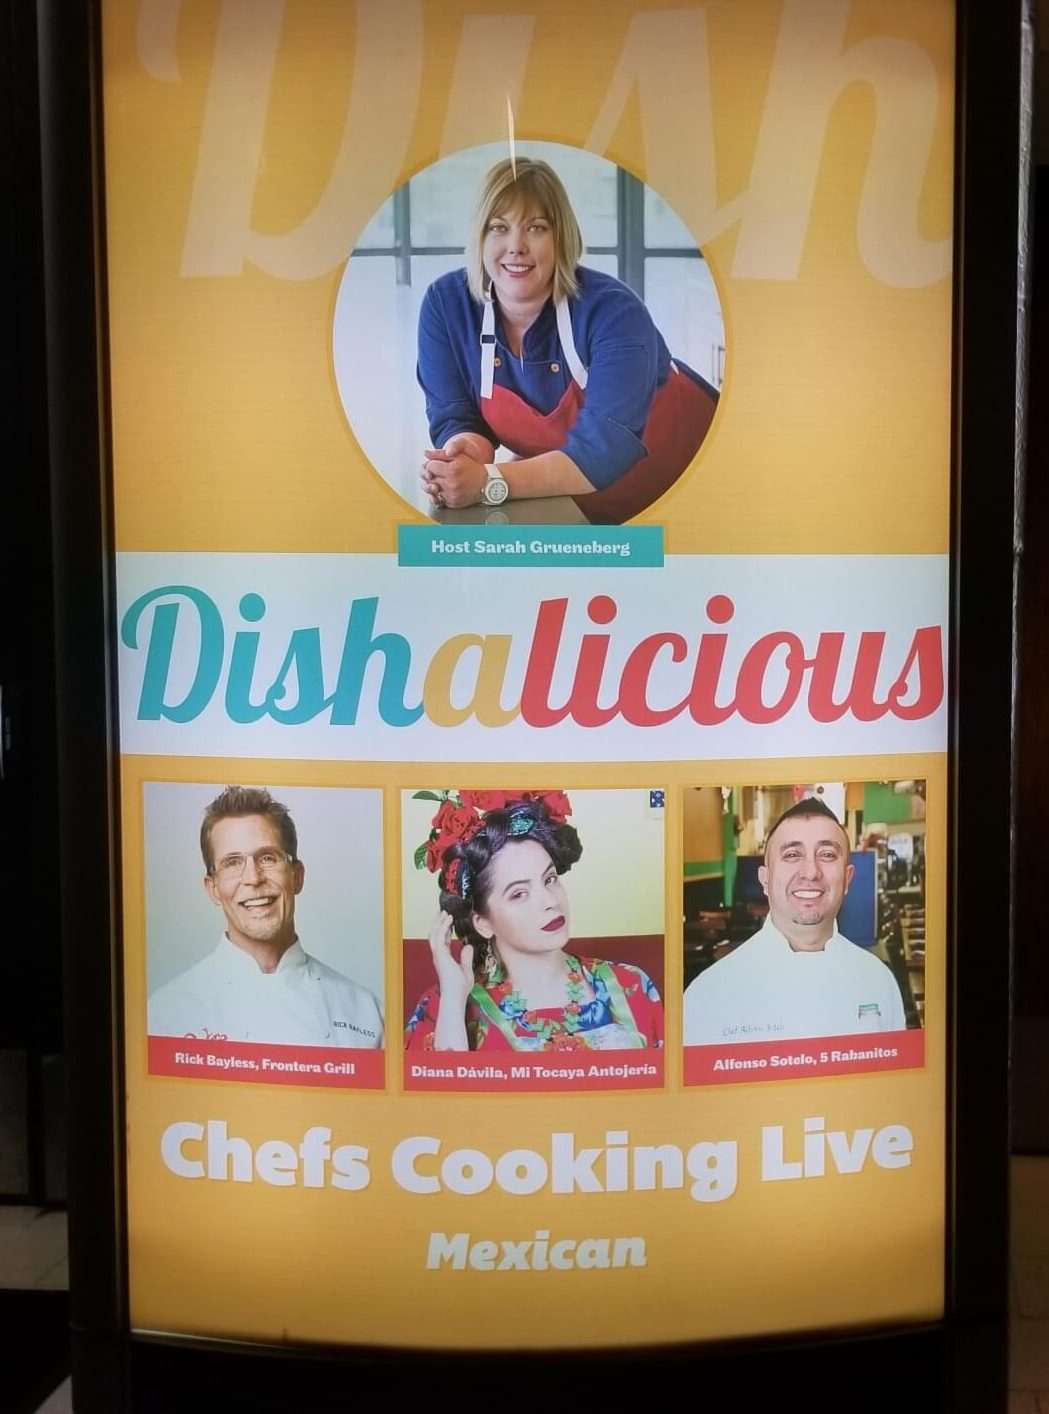 Dishalicious: A Preview of WTTW's New Cooking Show